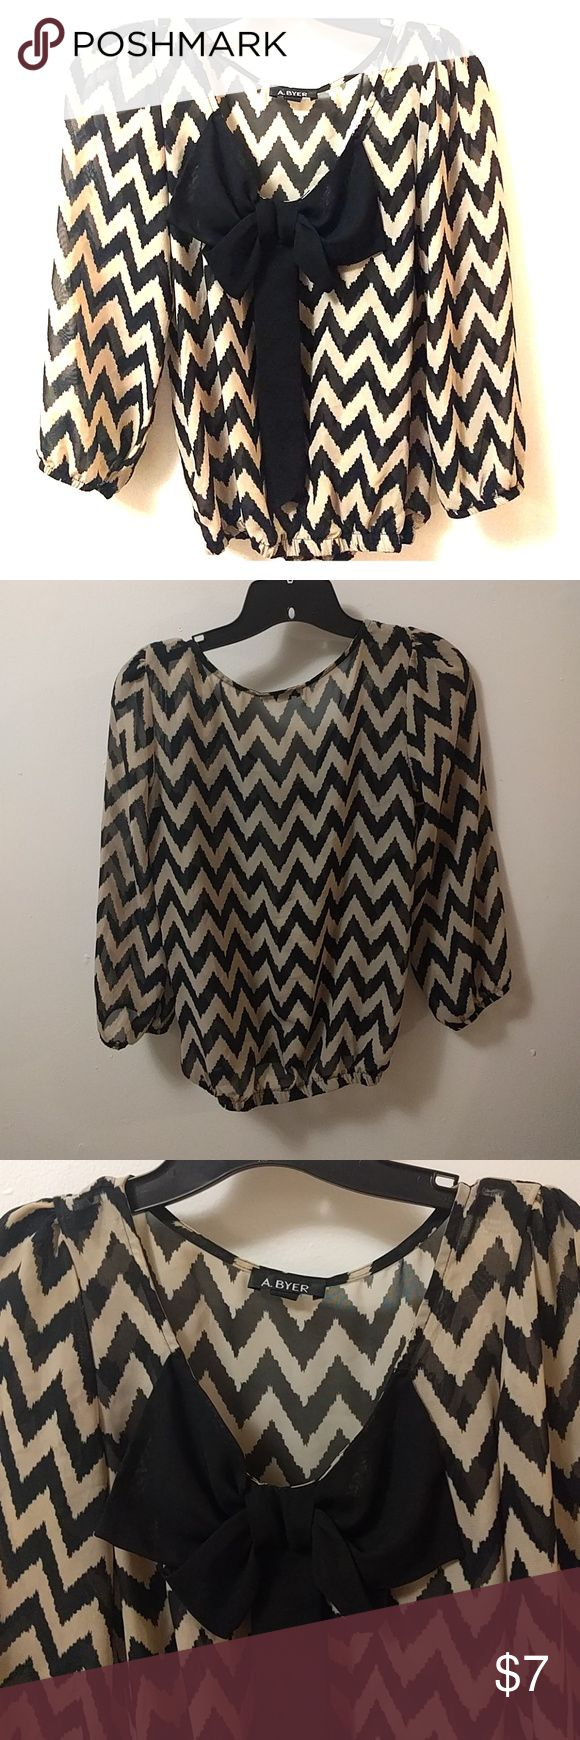 Amy Byer 3/4 sleeve chevron blouse Bow detailed chevron blouse by Amy Byer Amy Byer Tops Blouses